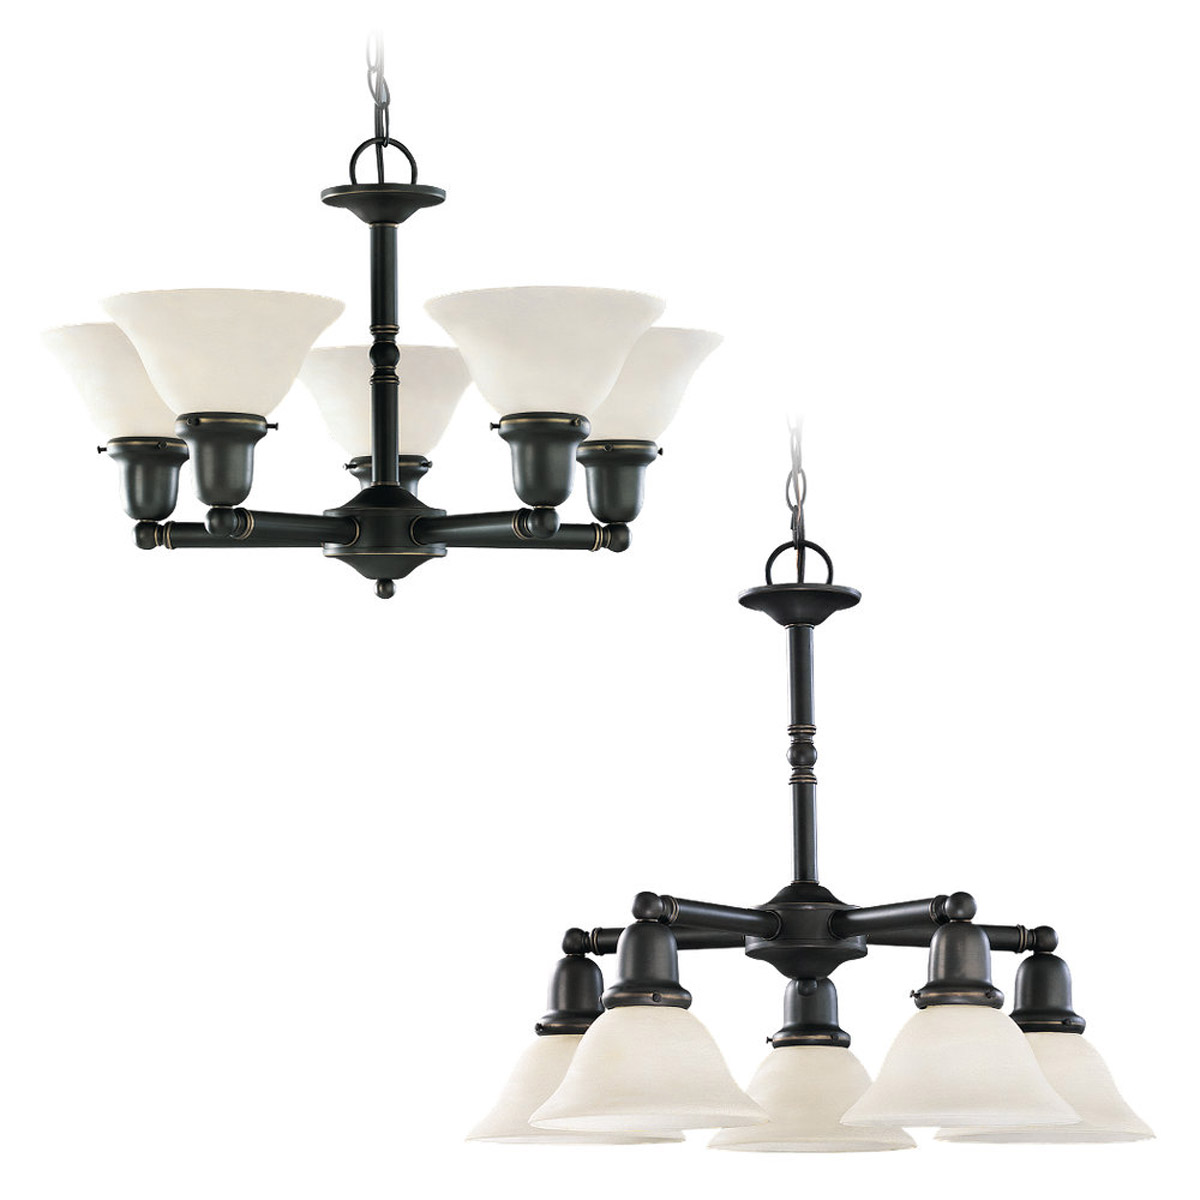 Sea Gull 31061-782 Sussex 5 Light 24 inch Heirloom Bronze Chandelier Ceiling Light in Satin Etched Glass photo